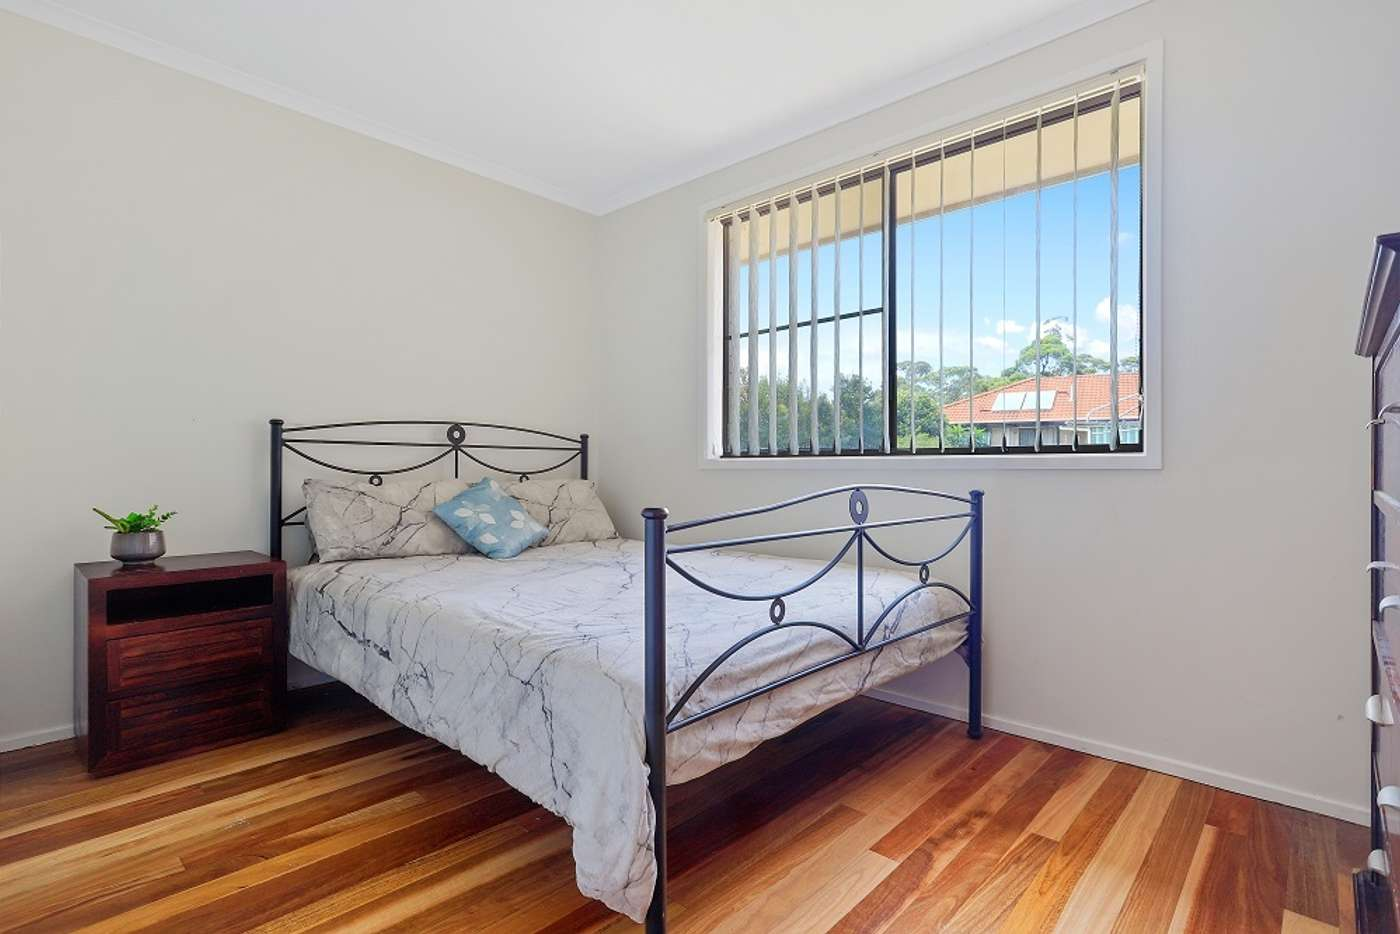 Sixth view of Homely house listing, 24 Beach Street, Vincentia NSW 2540